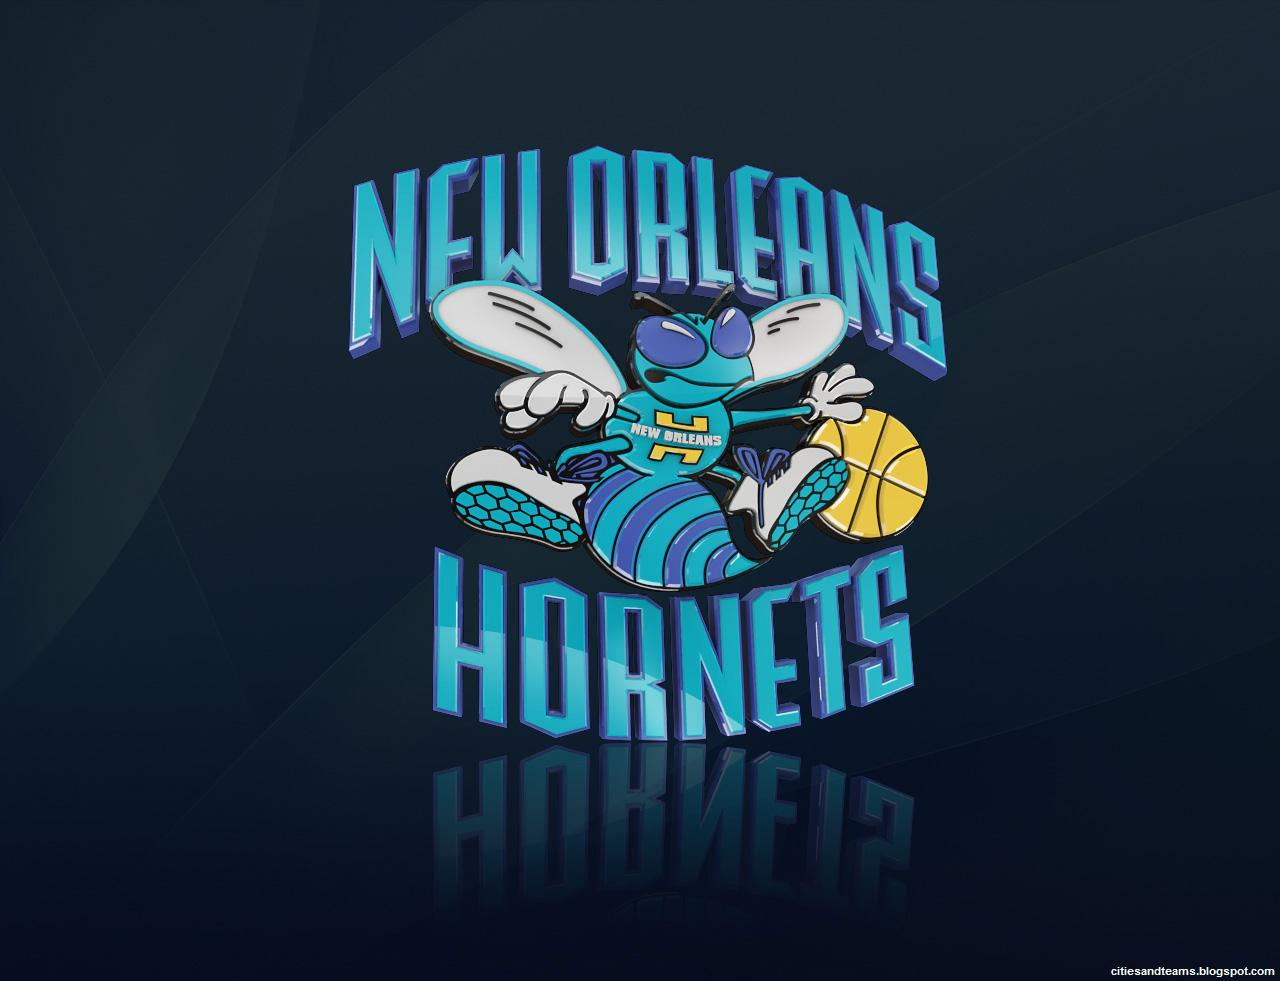 http://3.bp.blogspot.com/-BIOFh1GAvZ0/UEteV3pUPWI/AAAAAAAAHqw/MPJXCE1aVyg/s1600/New_Orleans_Hornets_NBA_American_Basketball_Team_USA_Louisiana_Hd_Desktop_Wallpaper_citiesandteams.blogspot.com.jpg